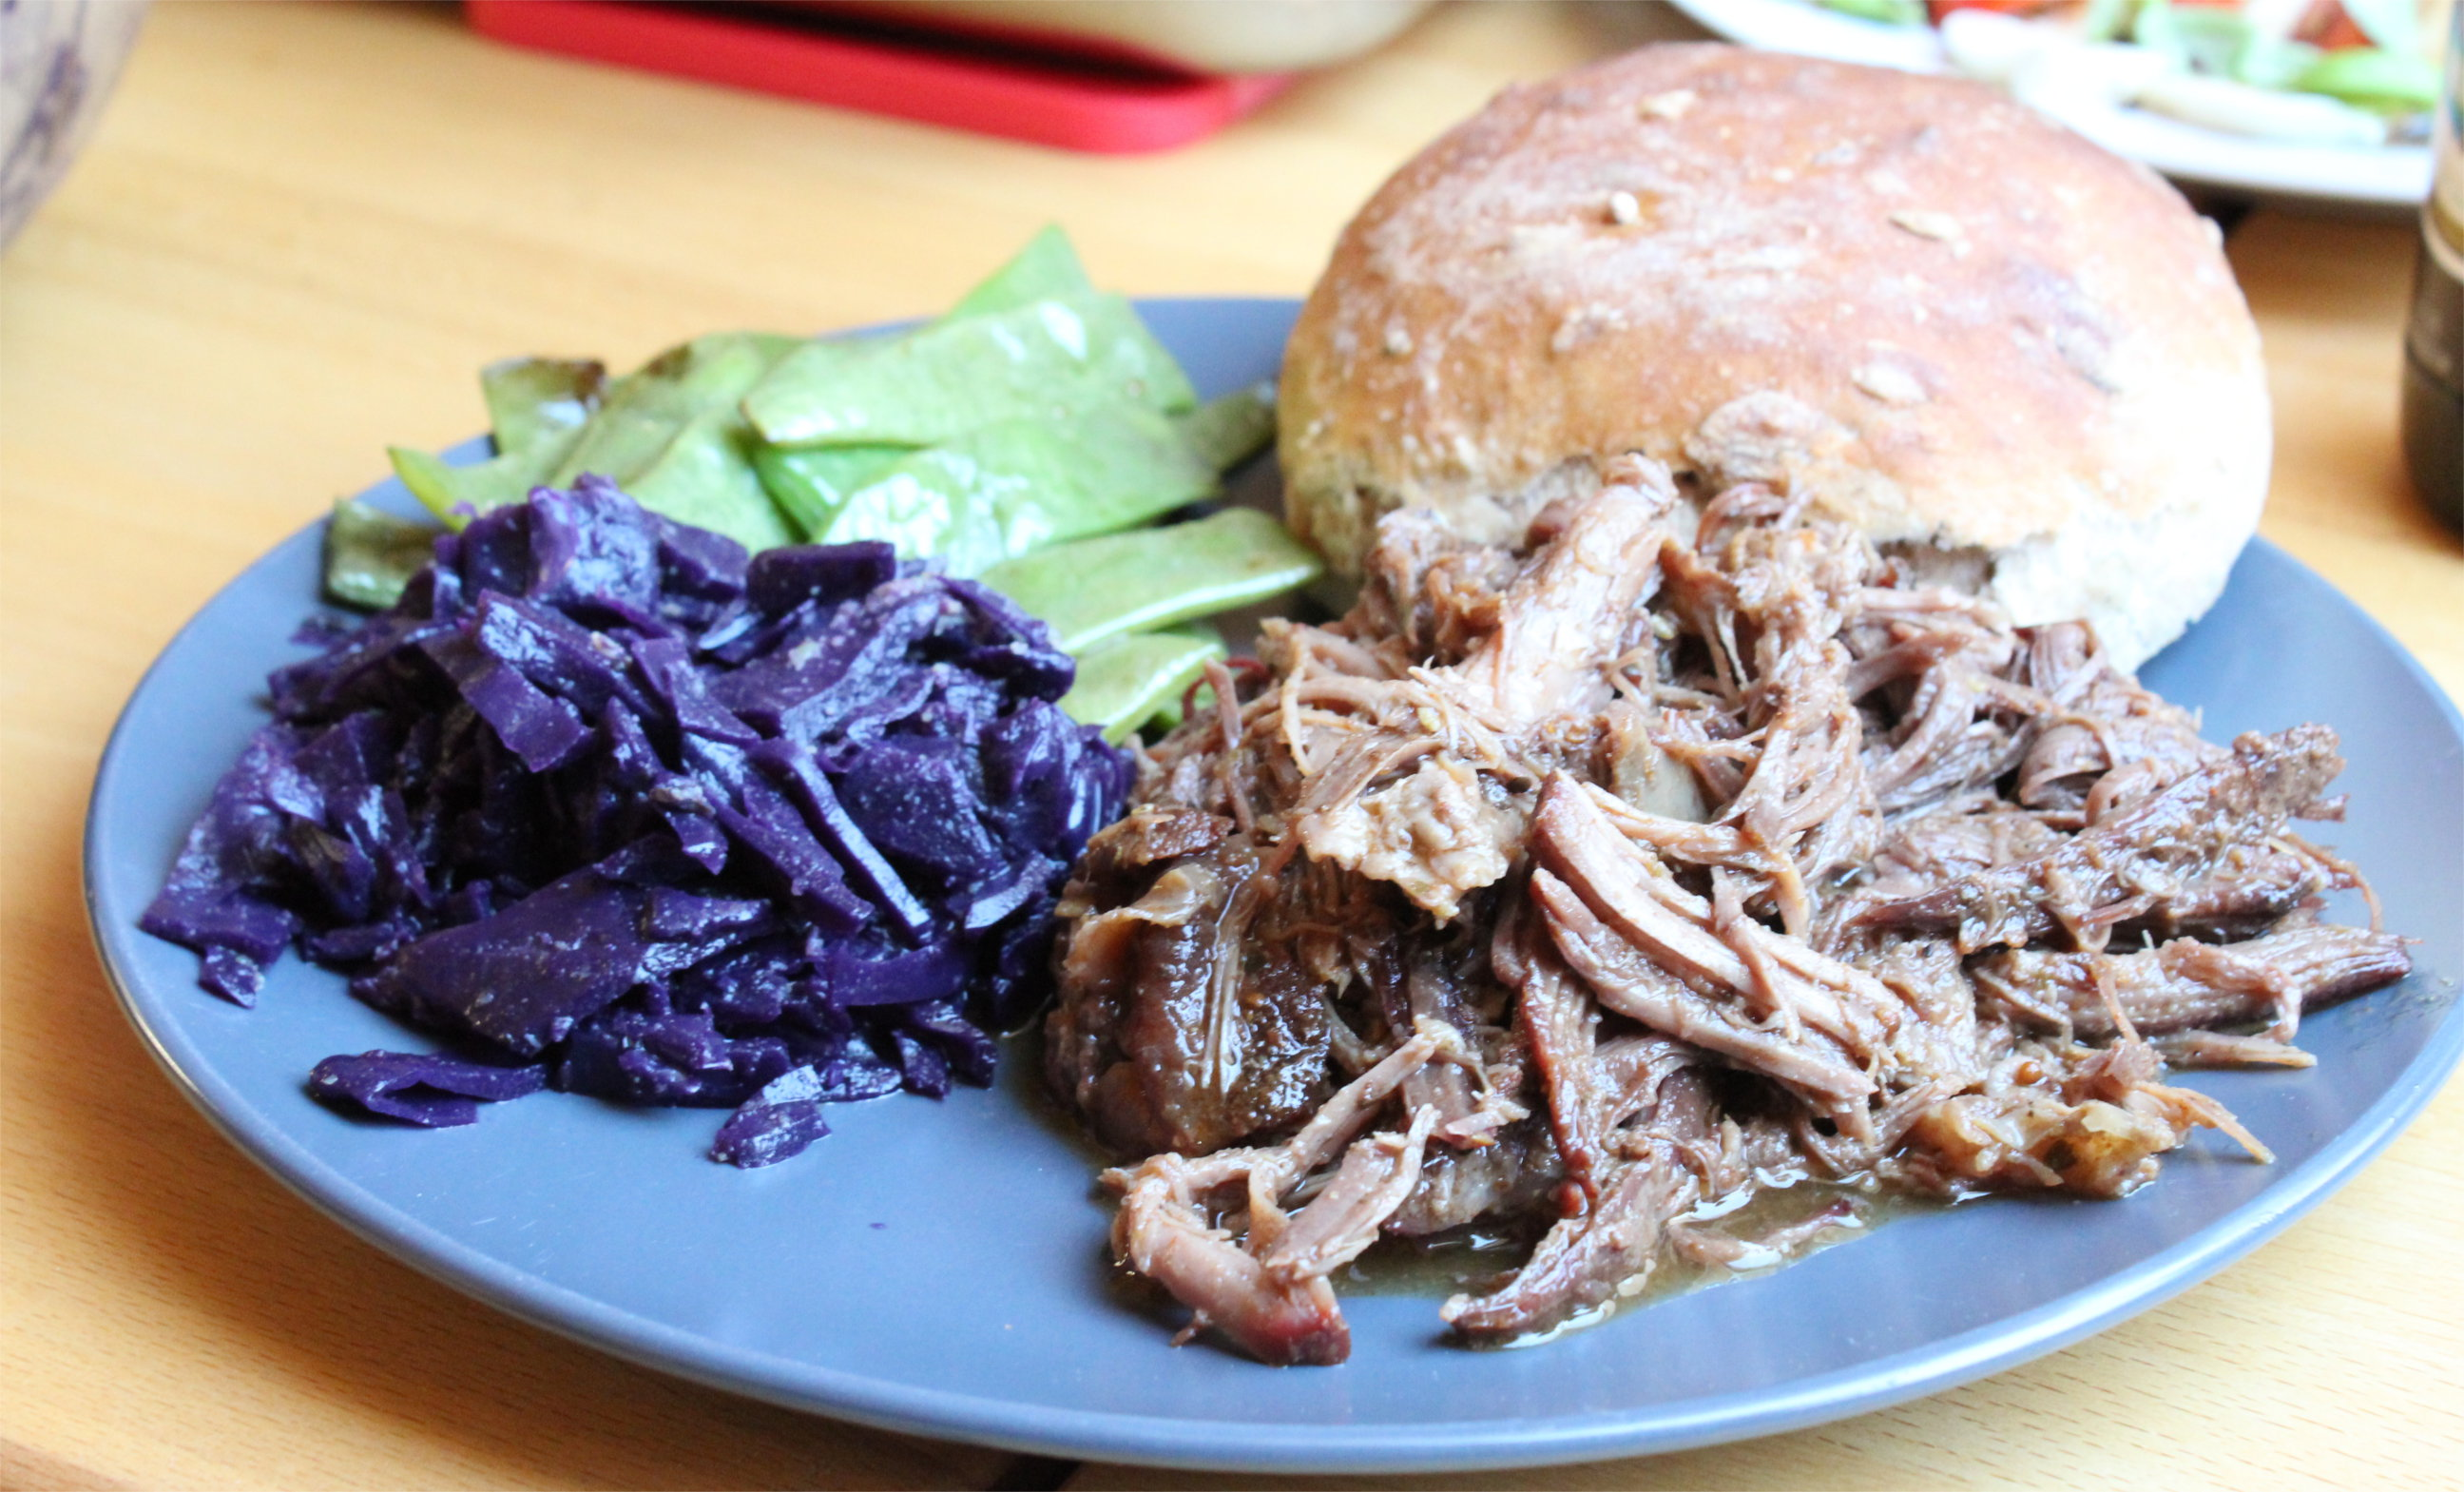 Pulled Pork Gasgrill Texas : Wildschwein pulled pork u das grillmanifest